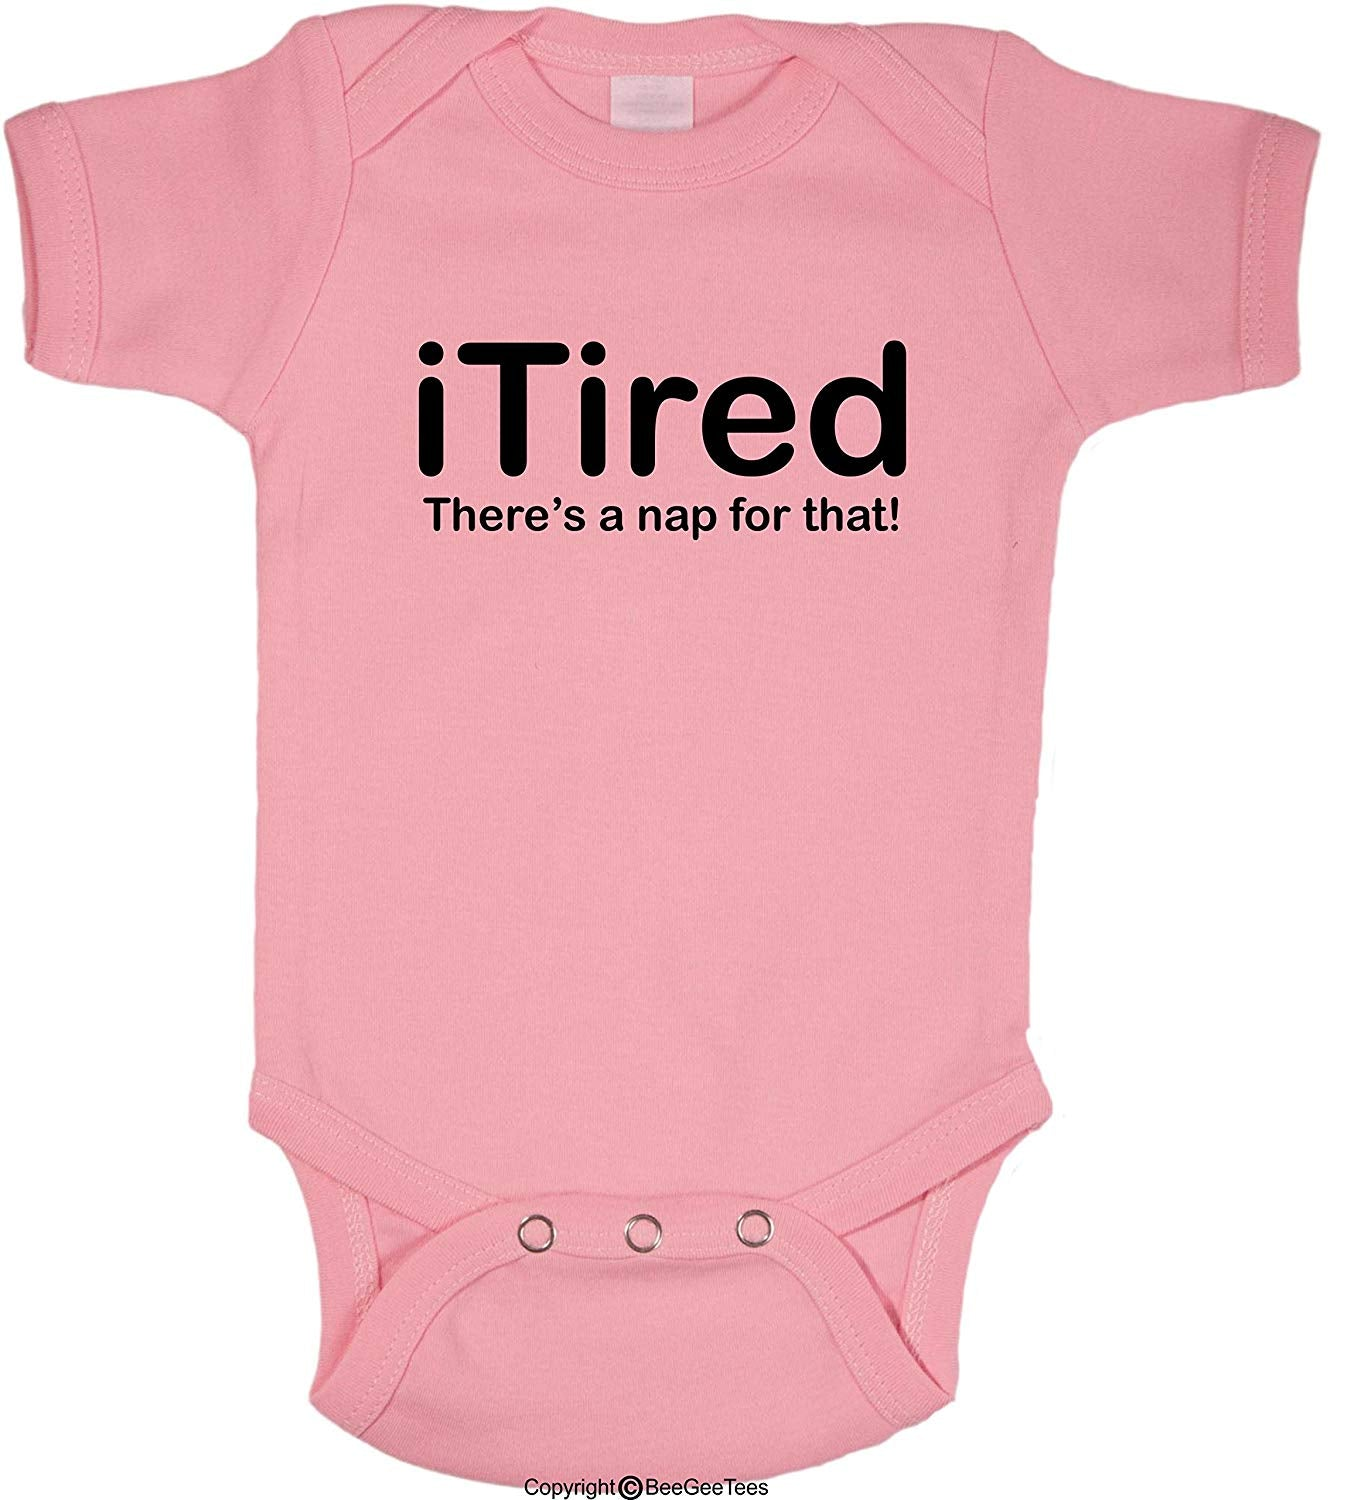 There's A NAP For That iTired iSleepy iBaby Funny Baby Bodysuit by BeeGeeTees